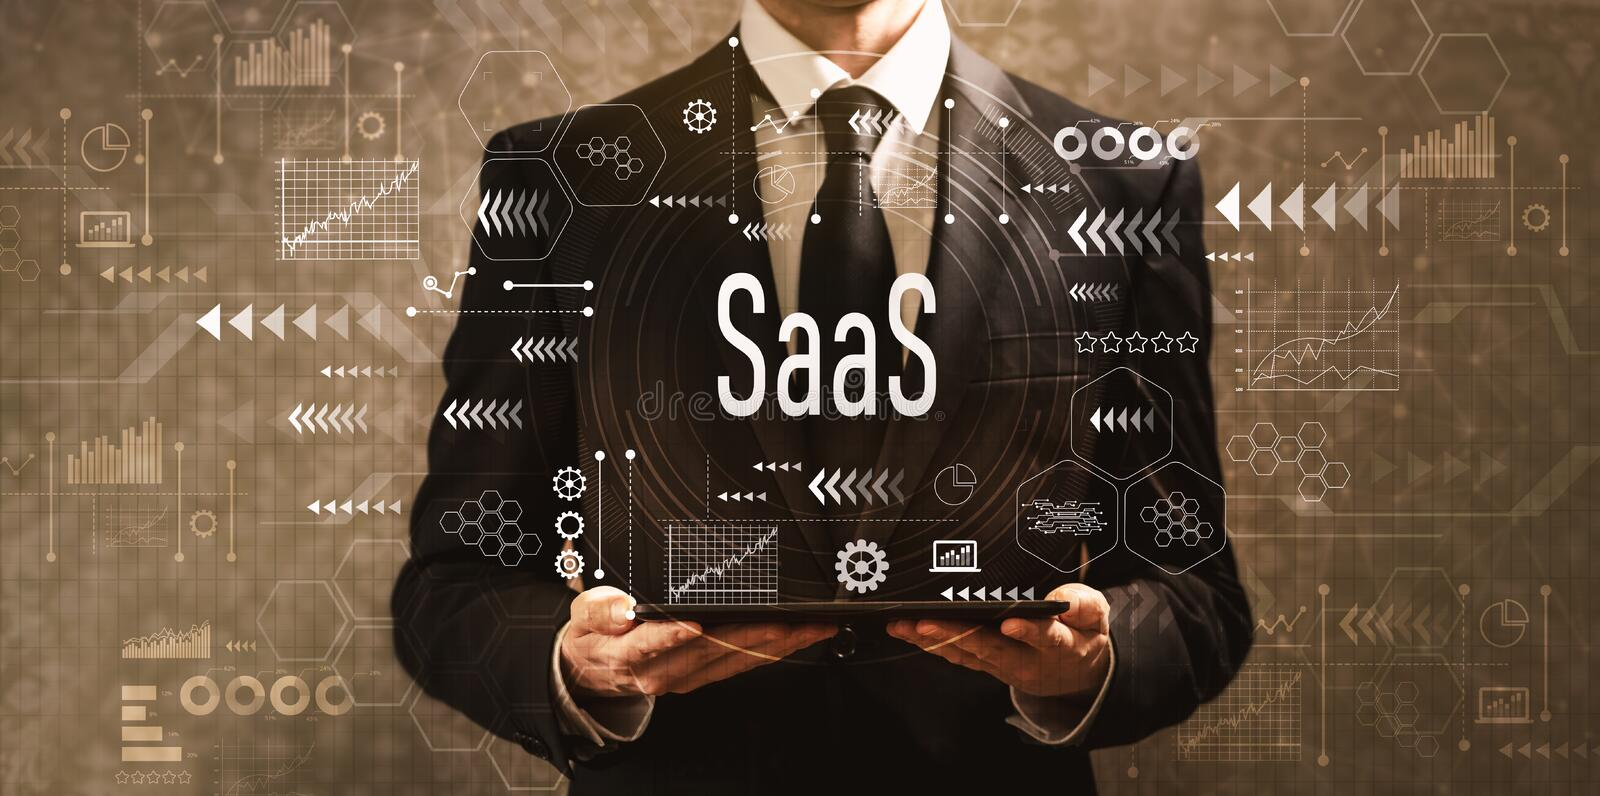 SaaS with businessman holding a tablet computer. On a dark vintage background stock photography